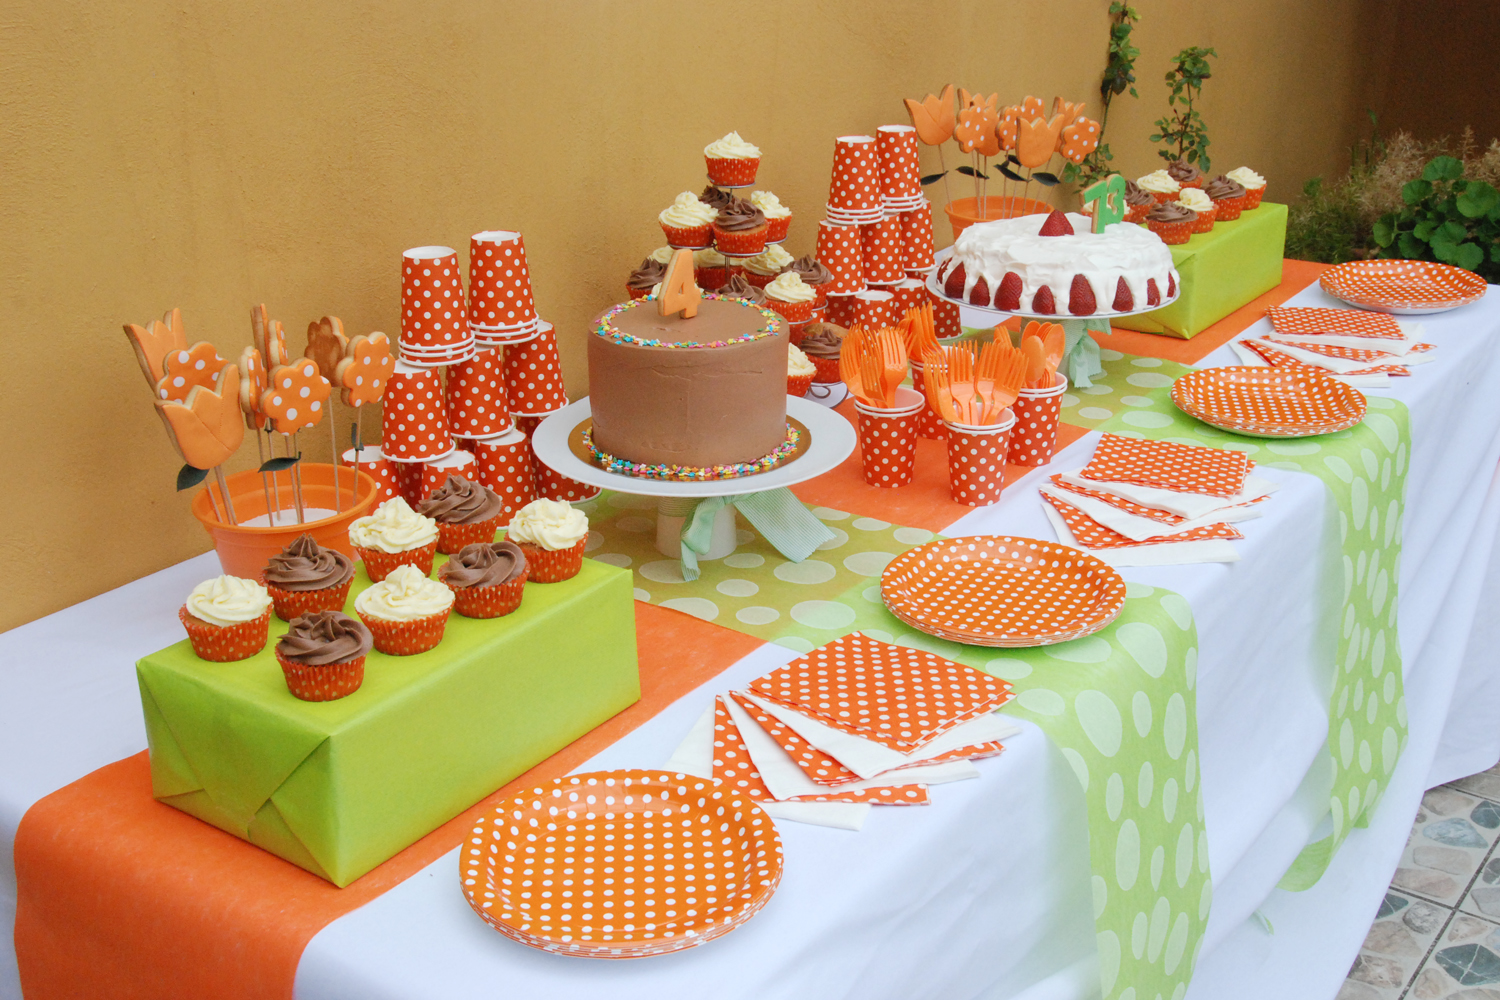 Galletas lazos cumplea os en archidona for Ideas decoracion cumpleanos